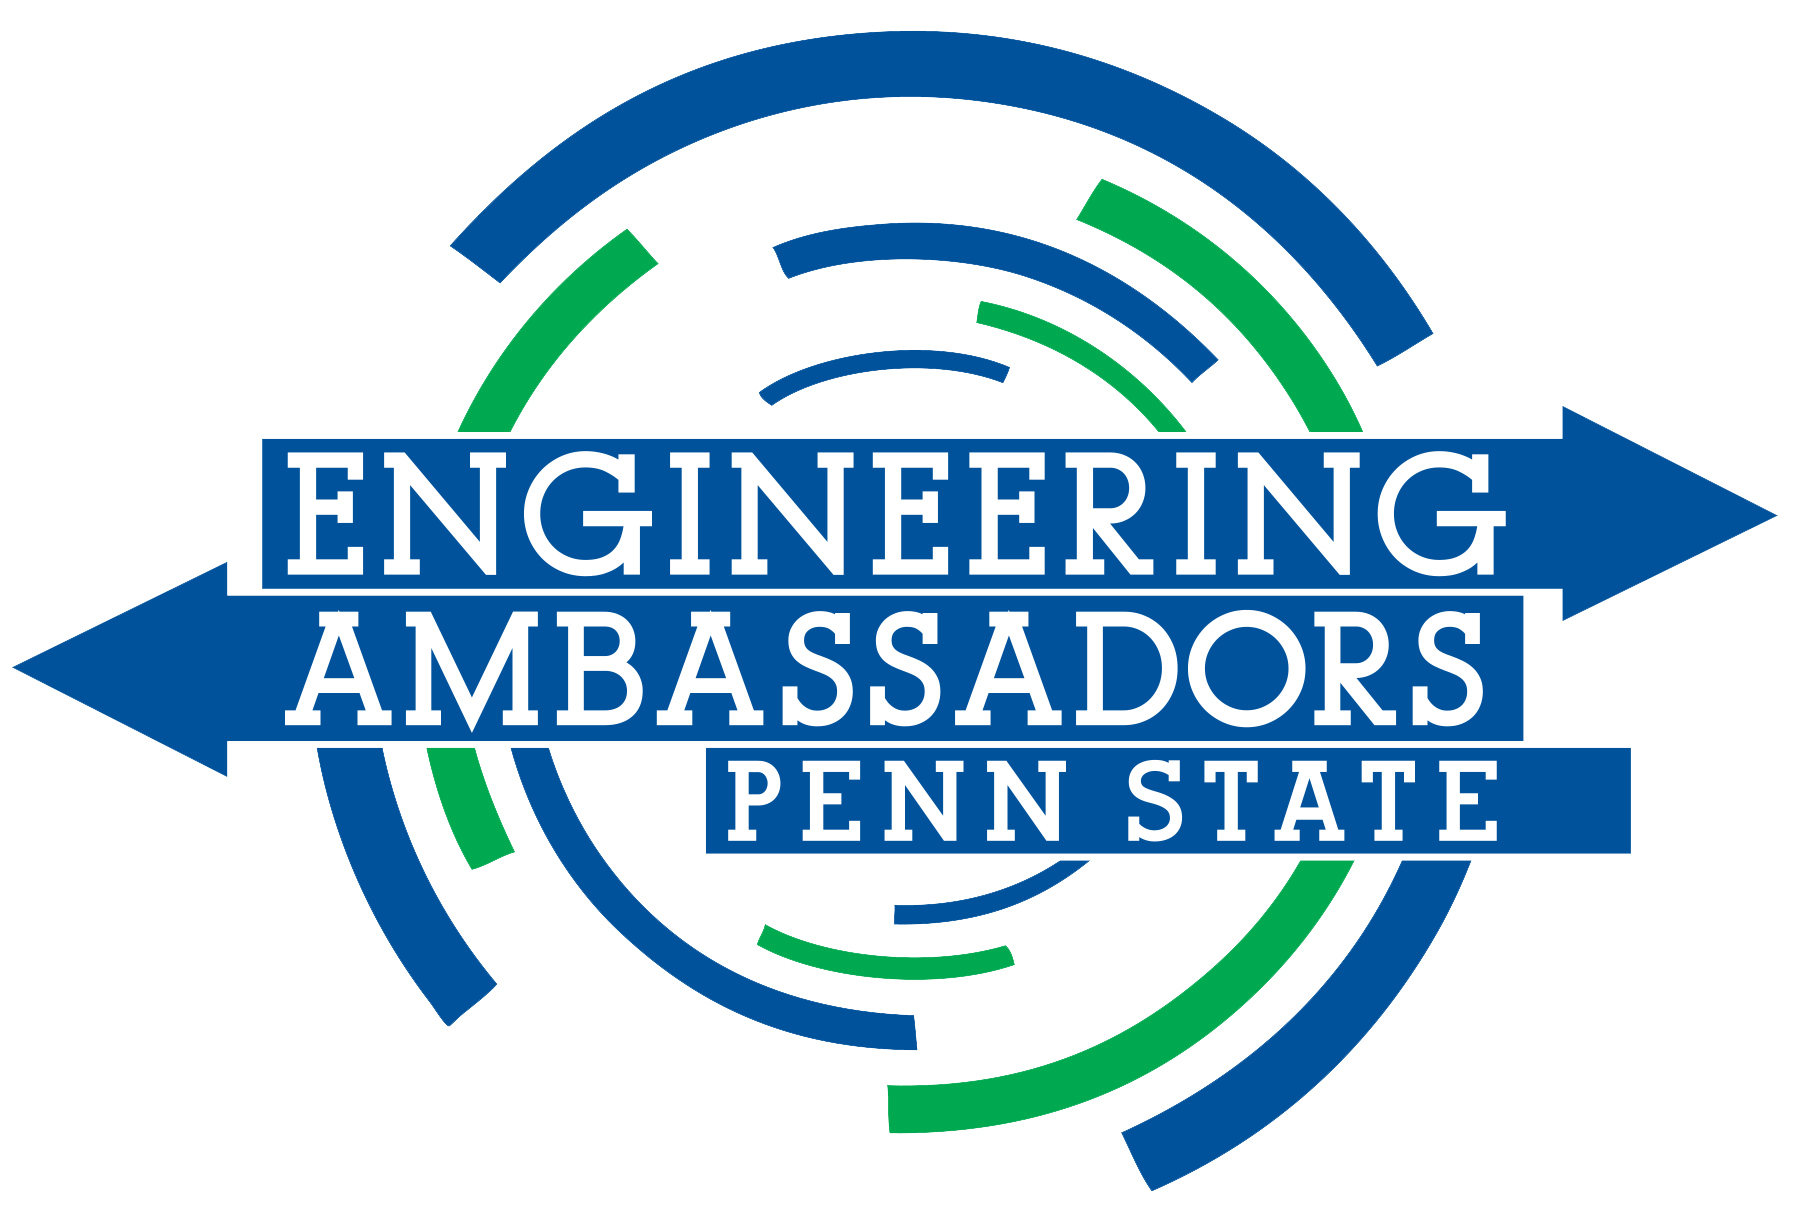 Penn State Engineering Ambassadors   profile picture